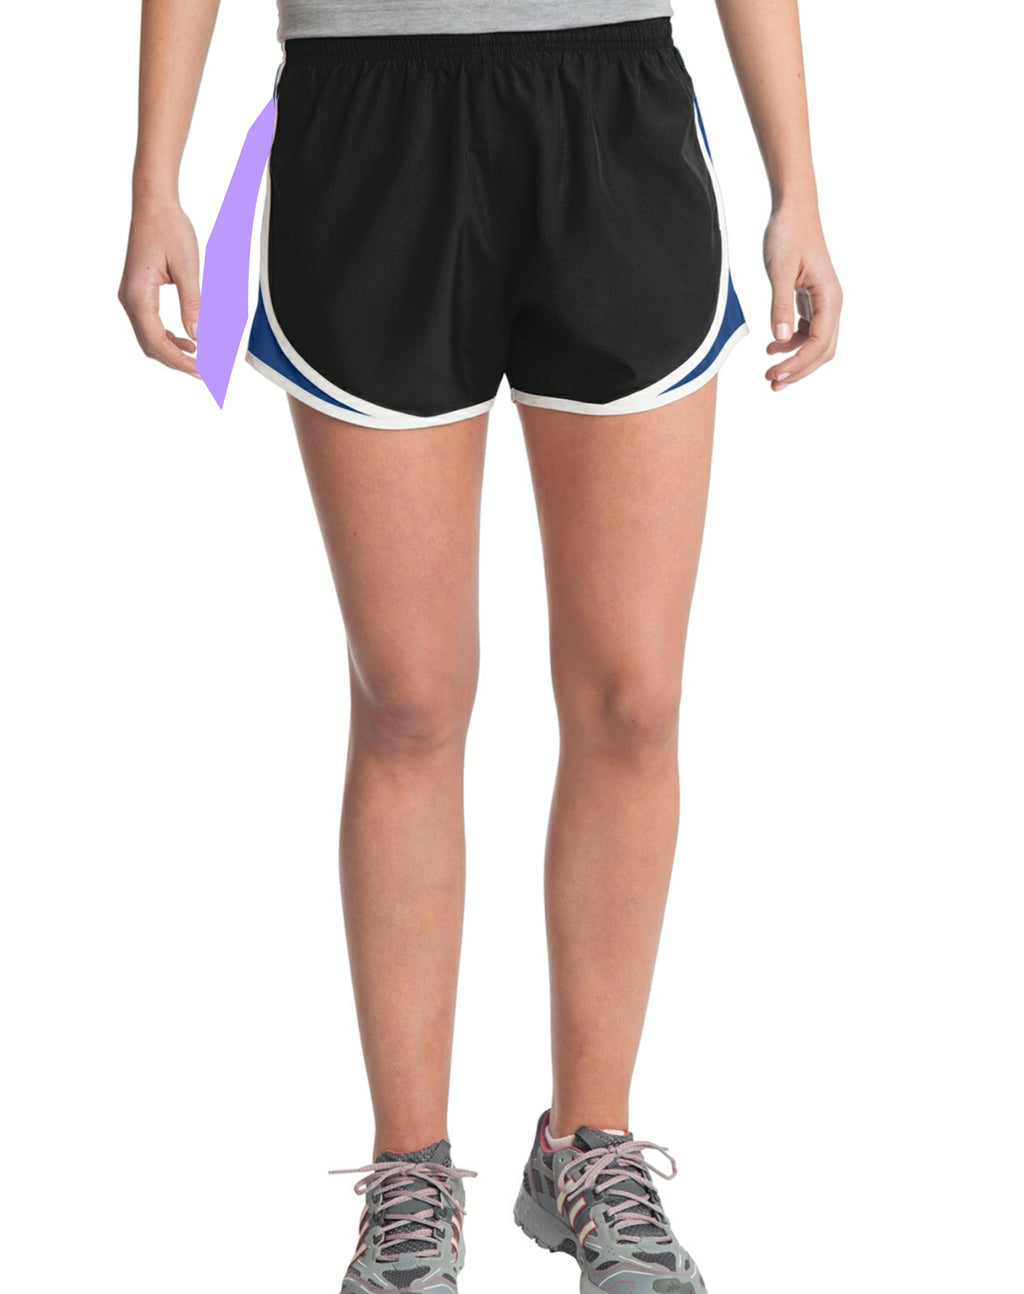 Sweaty Tee - Women's Shorts - black, royal, white